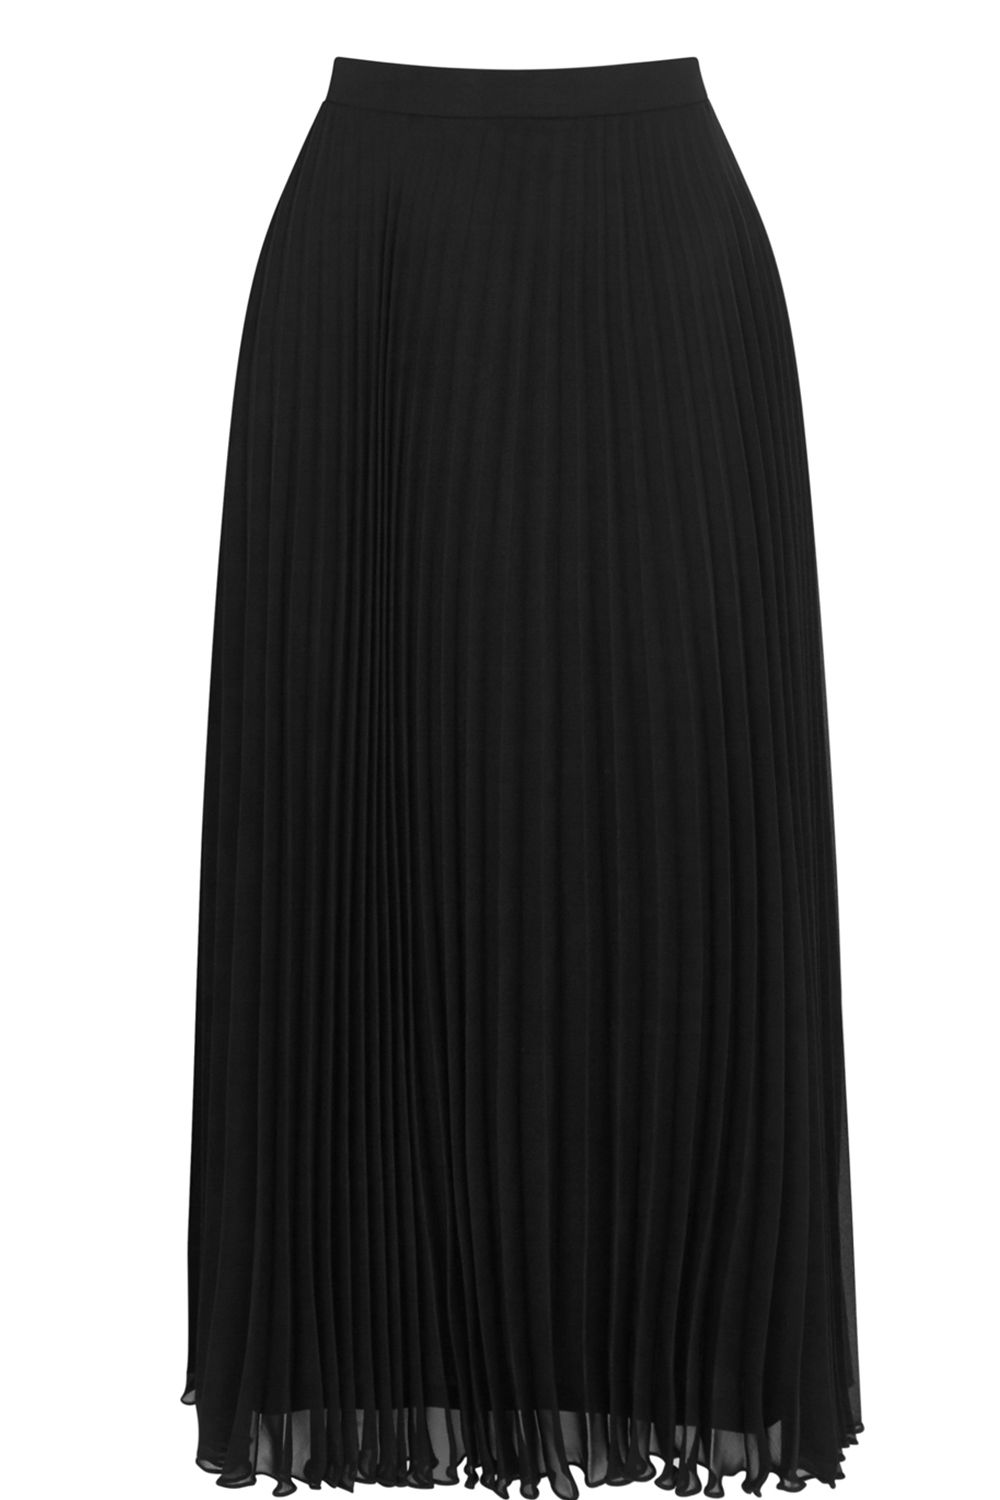 Oasis Pleated Skirt, Black